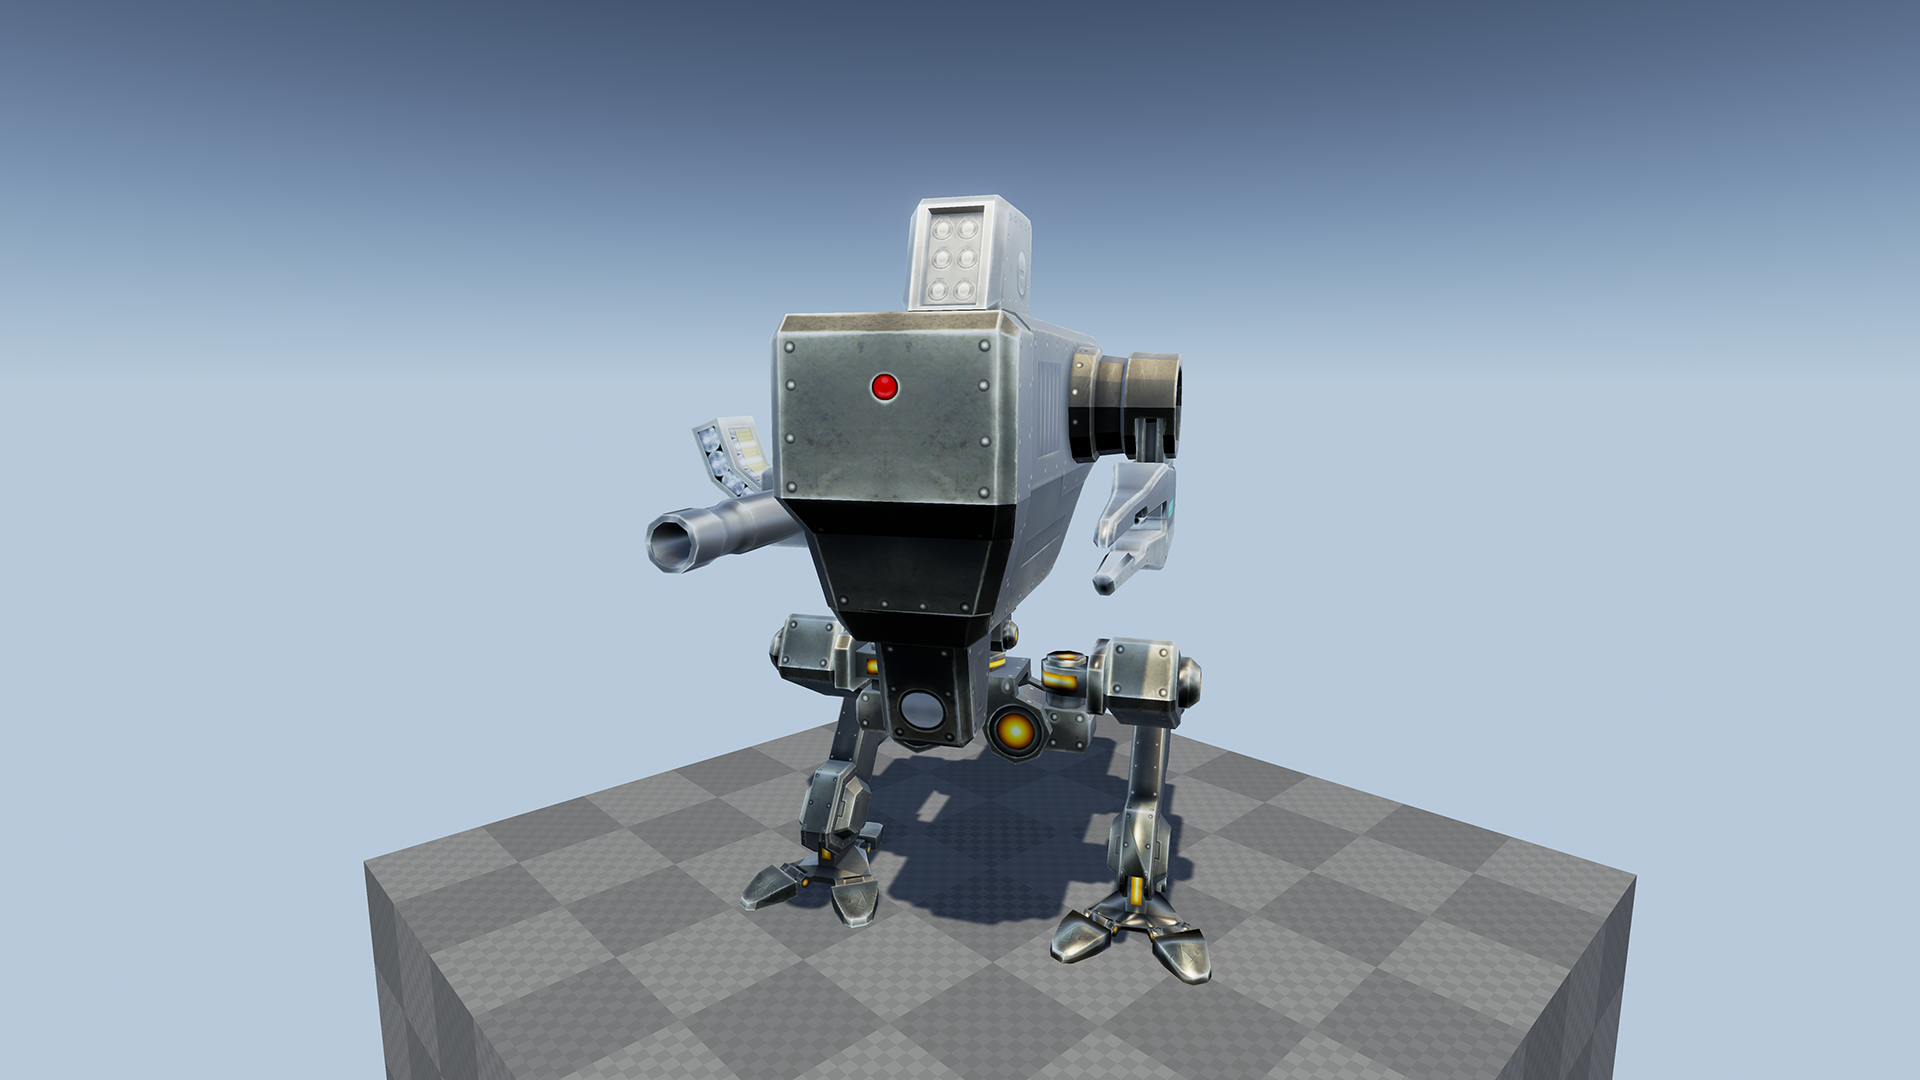 Sci Fi Robots Pack by PROTOFACTOR INC in Characters - UE4